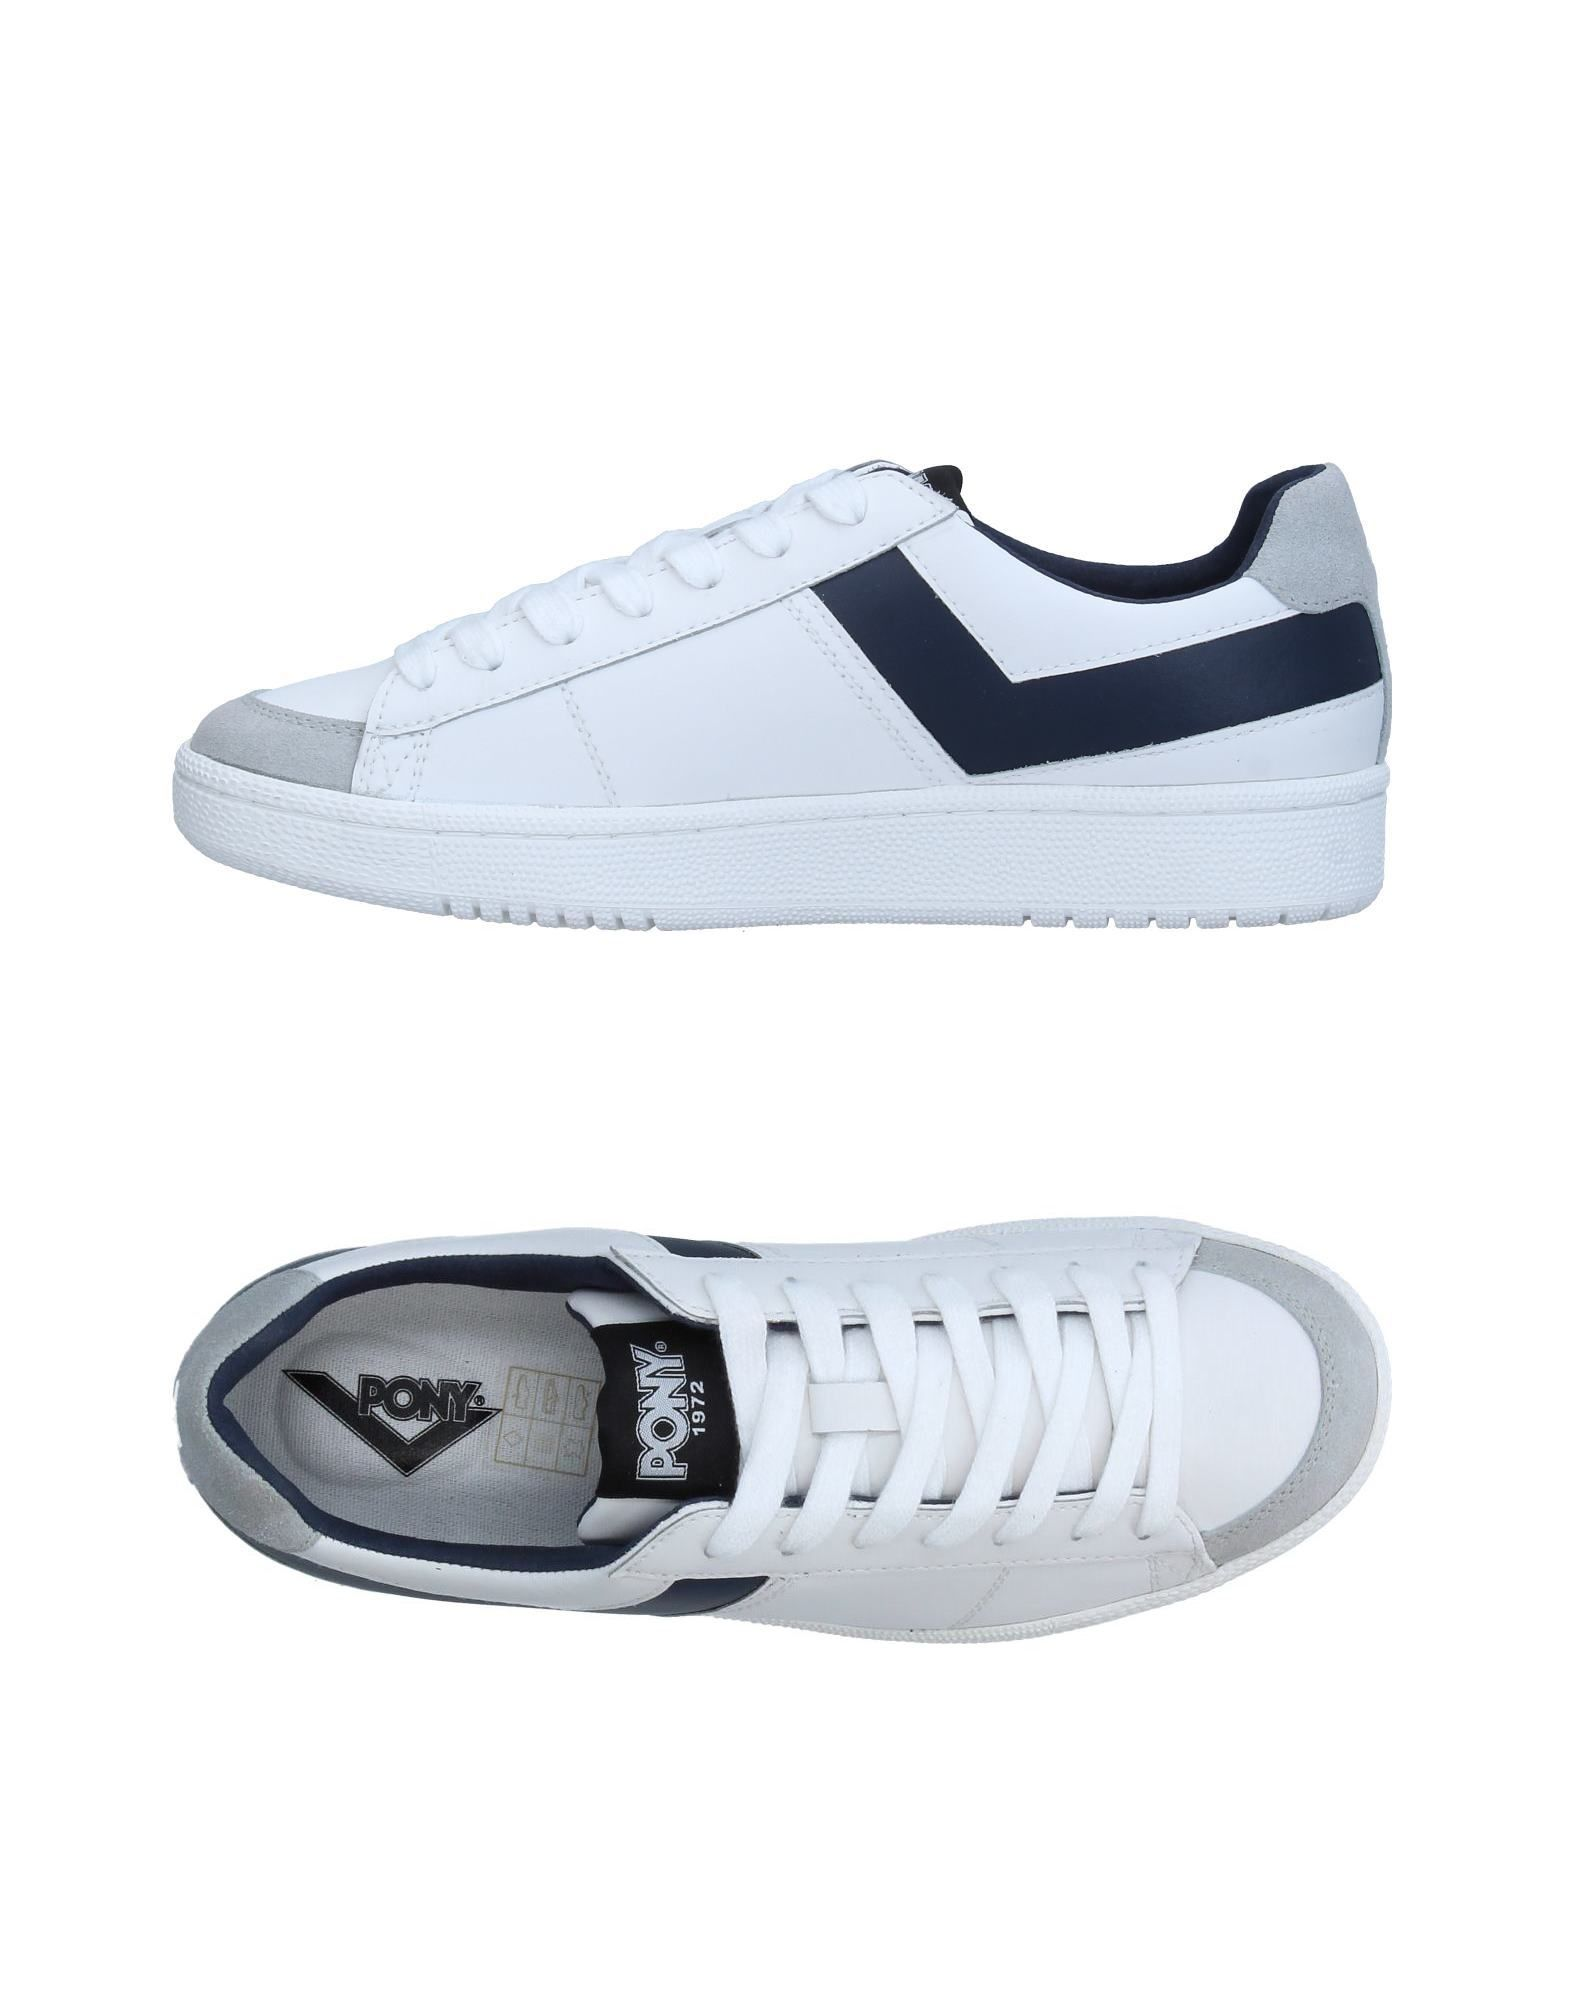 Sneakers Pony Homme - Sneakers Pony  Blanc Chaussures casual sauvages